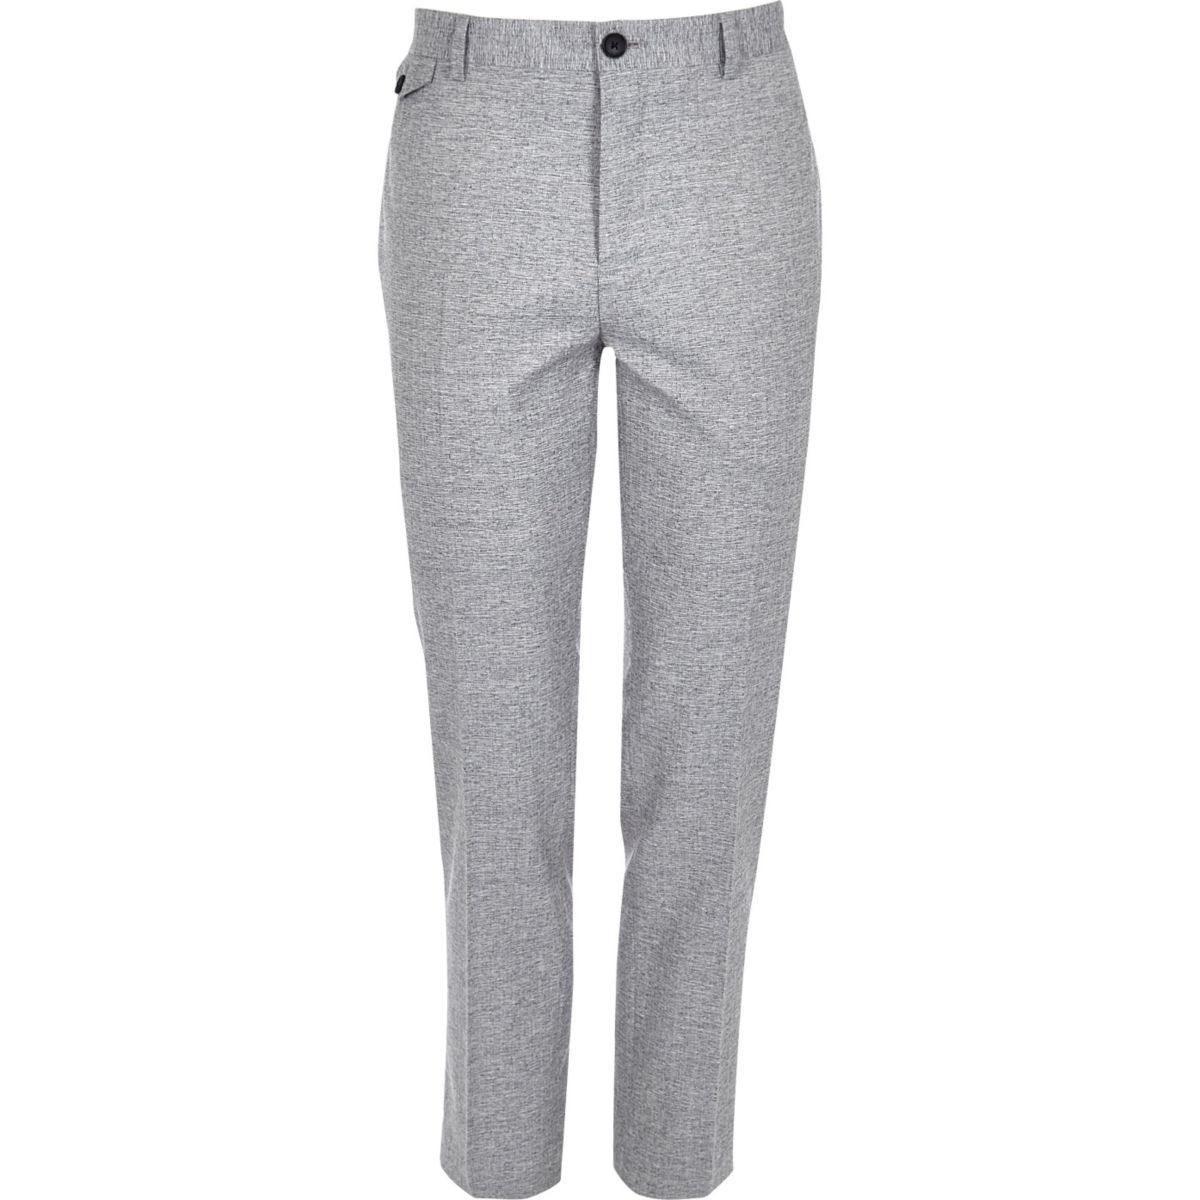 Grey crosshatch skinny fit suit pants